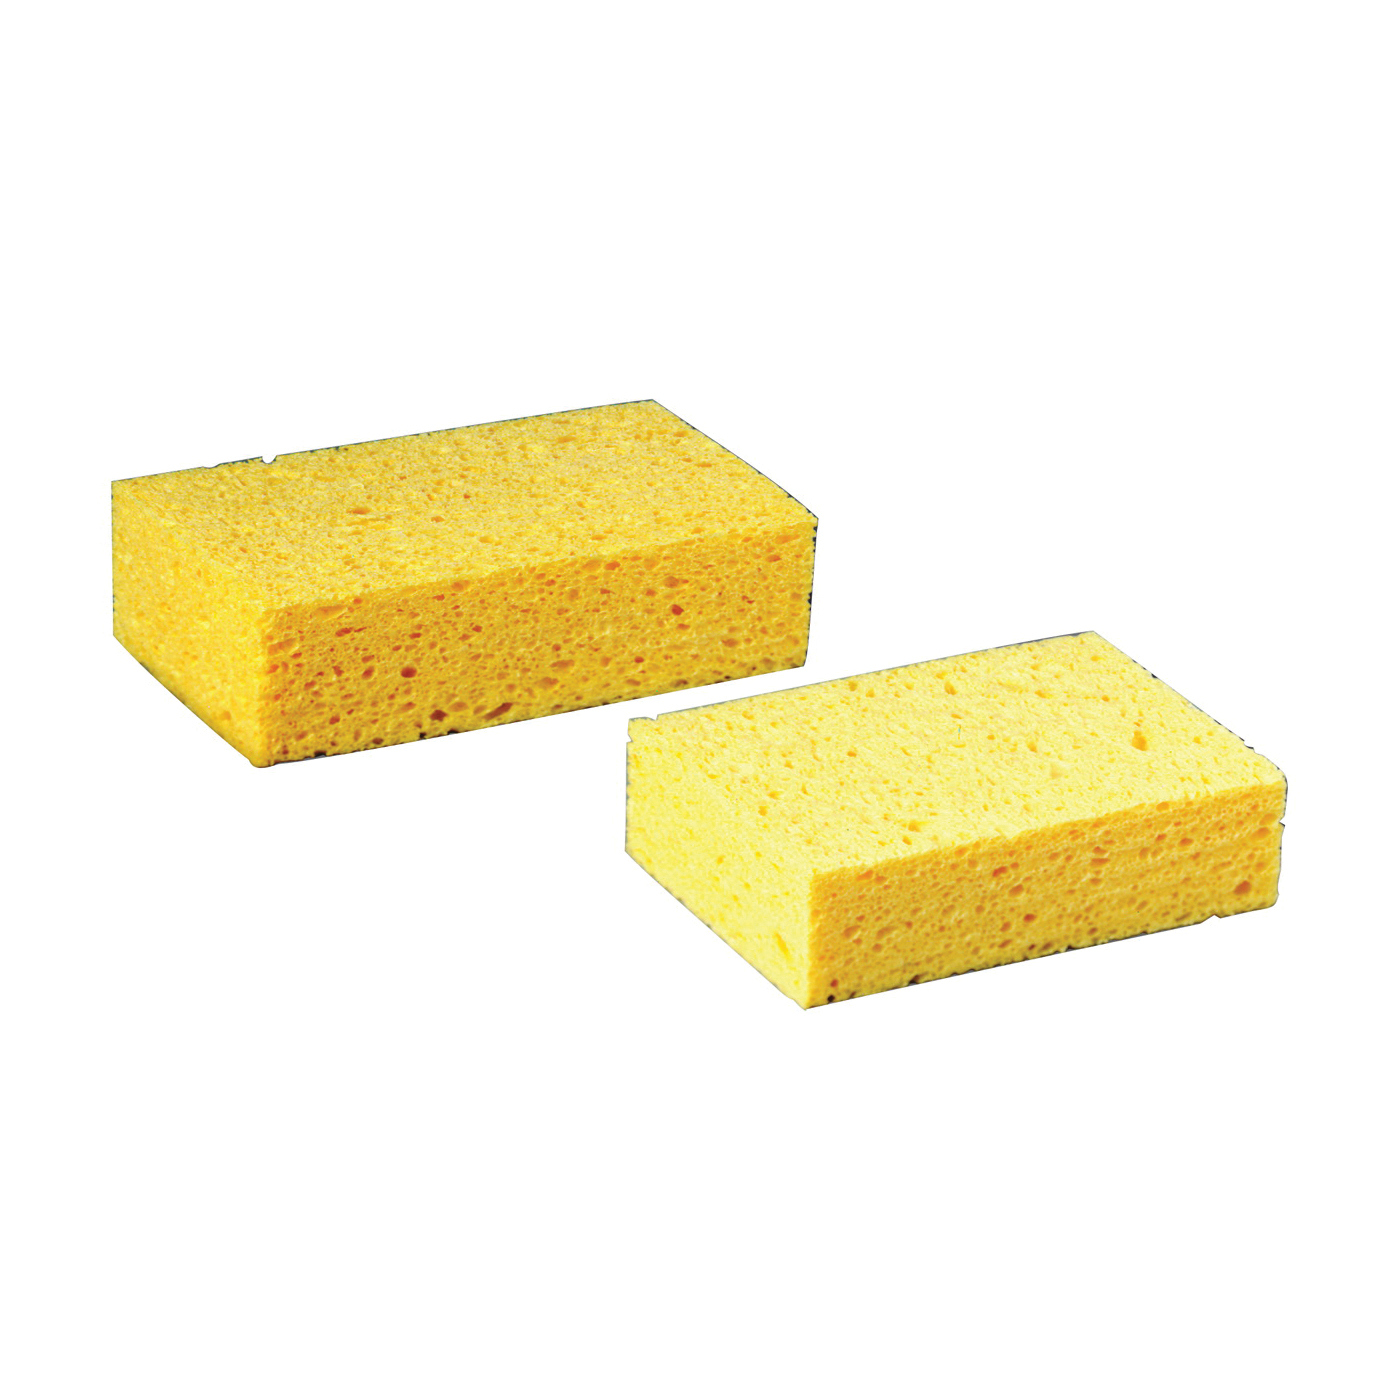 Picture of 3M 7456-T Commercial Sponge, 7-1/2 in L, 4-3/8 in W, 2.06 mil Thick, Cellulose, Yellow